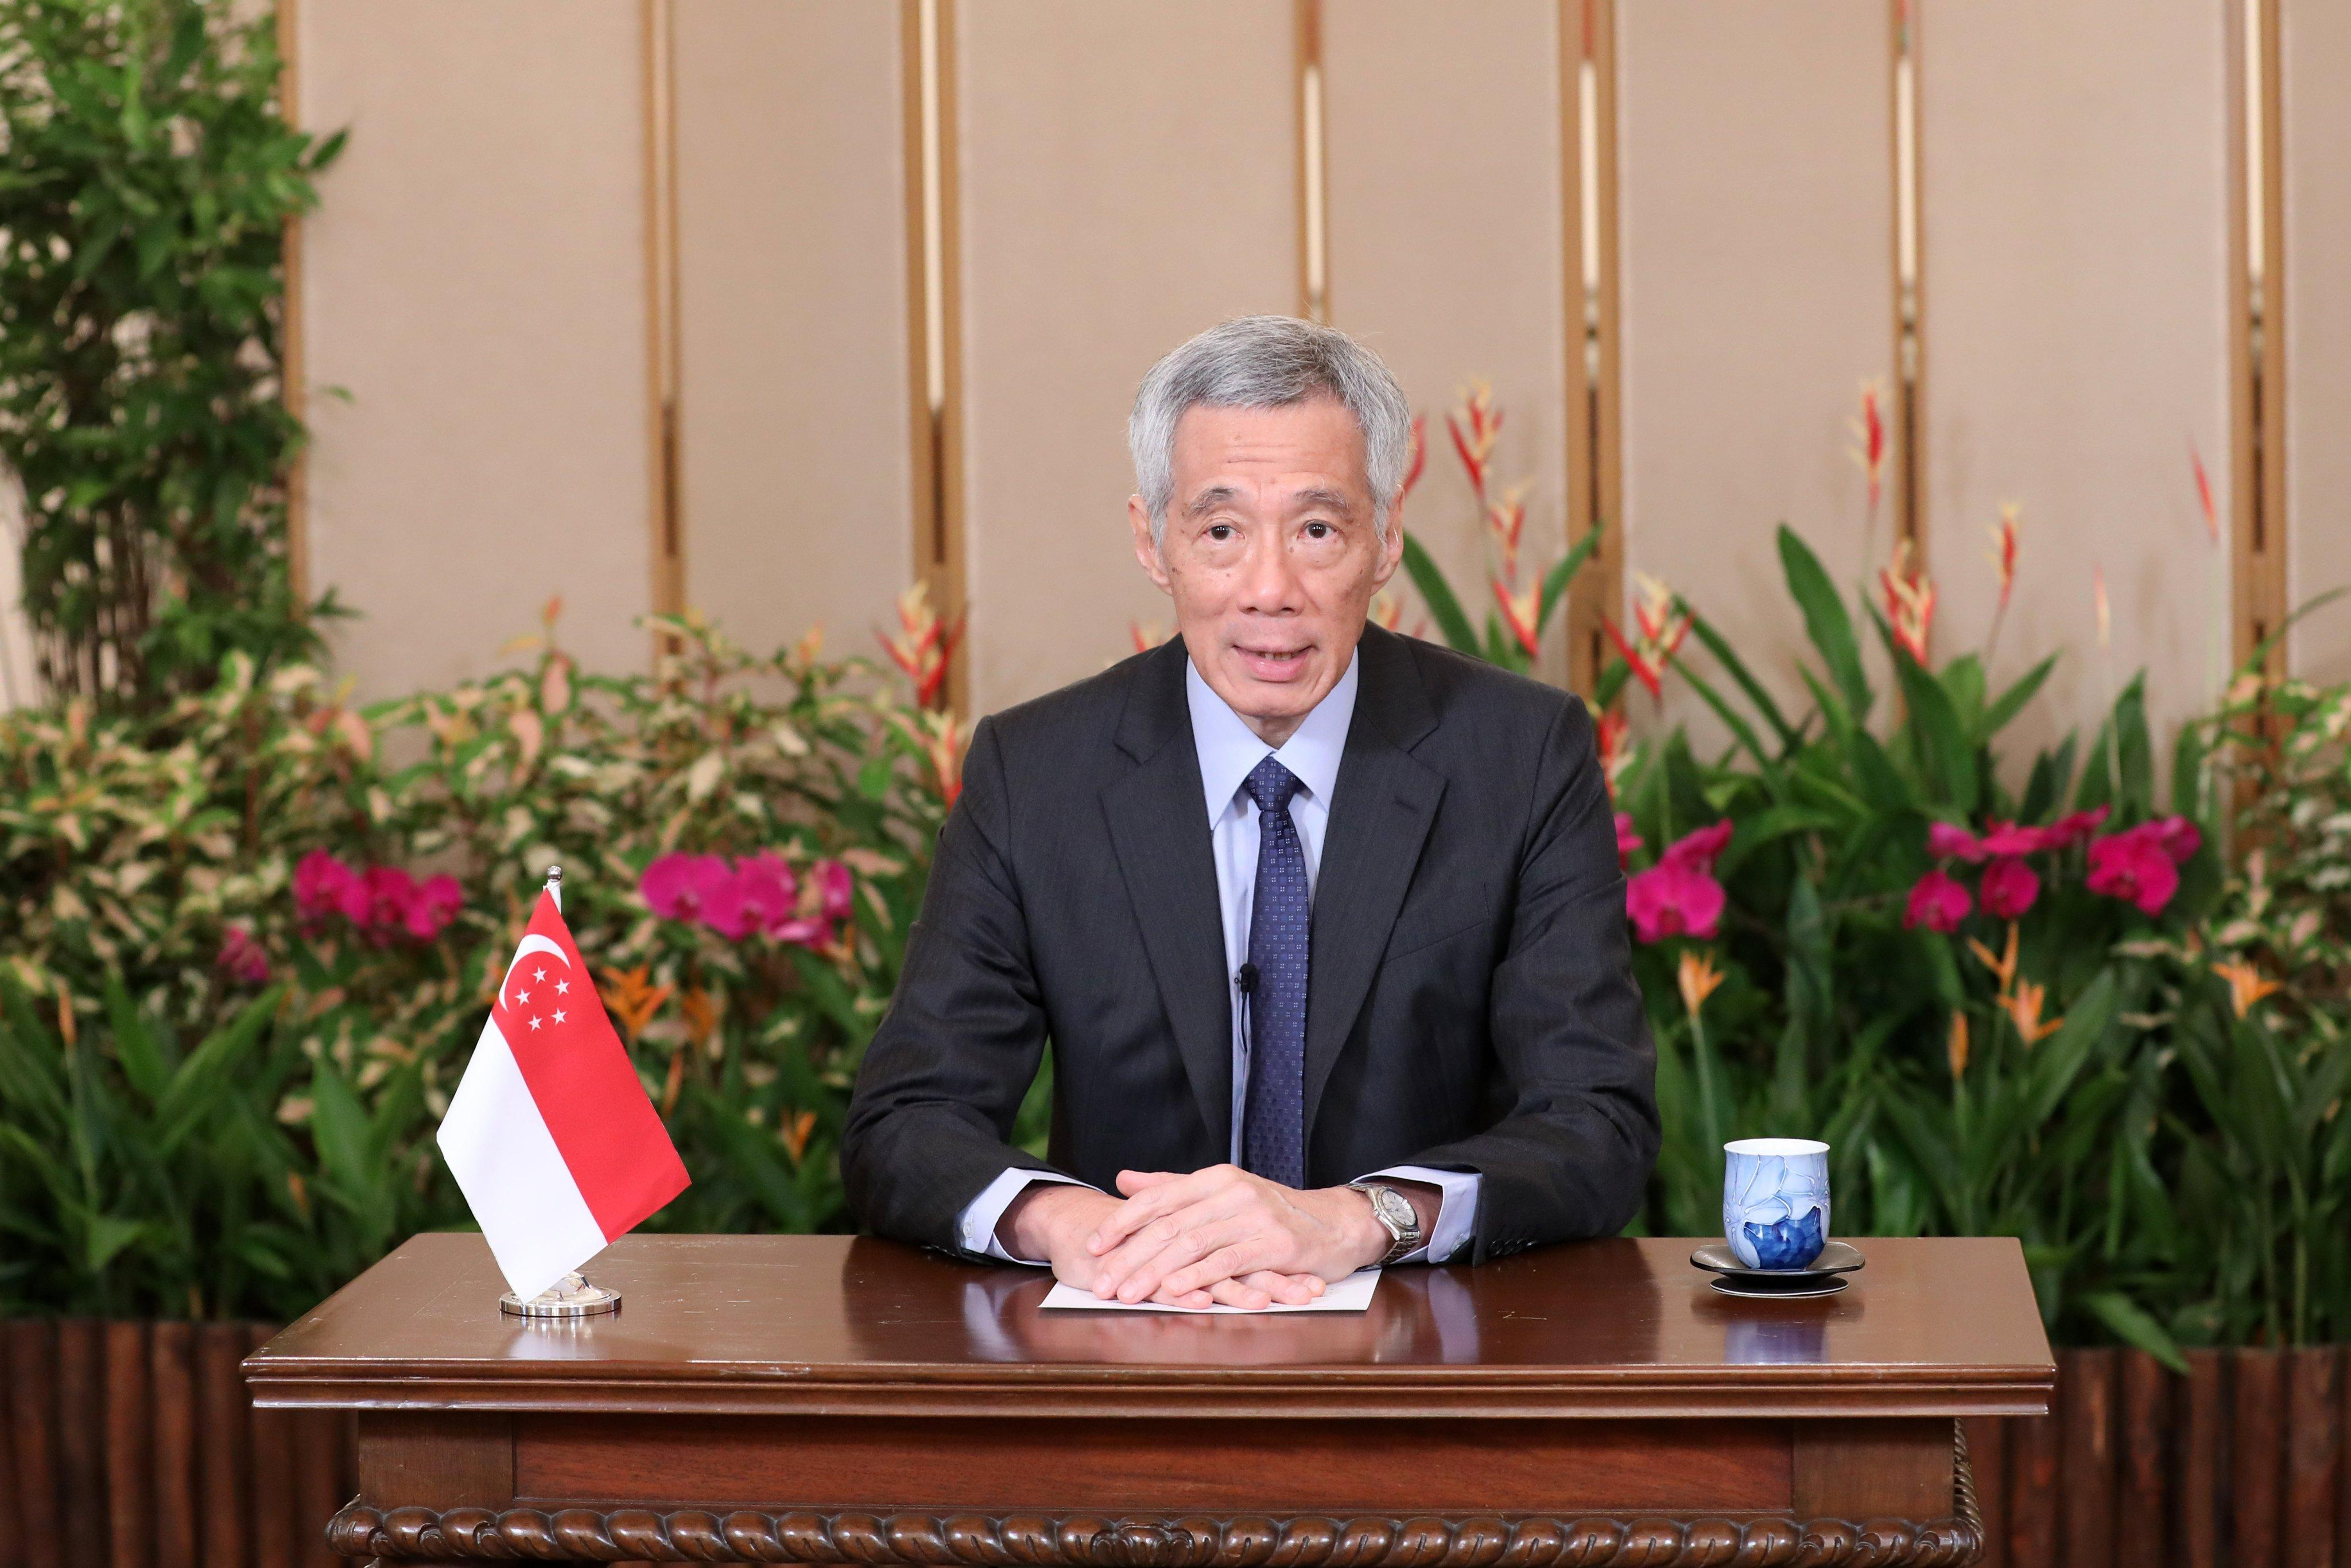 COVID-19: Singapore will do its part as global citizen – PM Lee